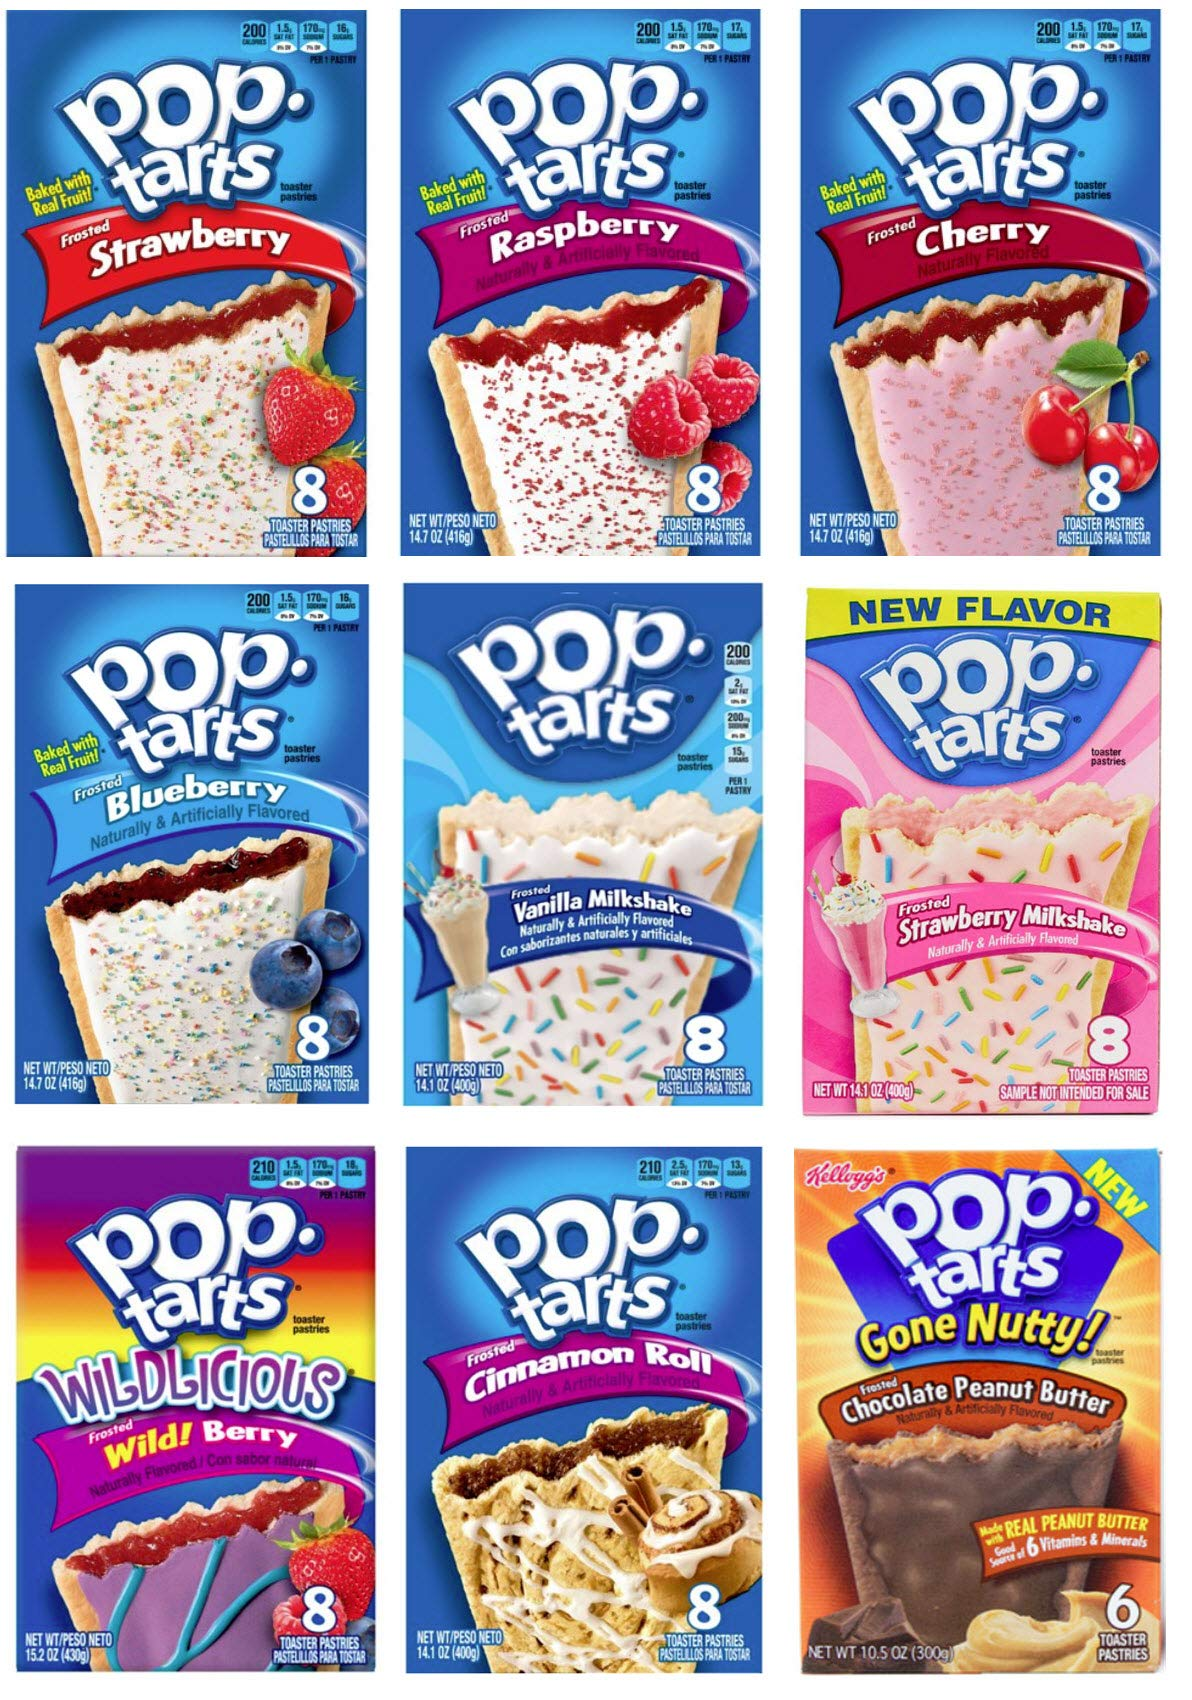 9 Pack! The Fruit Flavored Ultimate Pop Tart Variety Pack 9 Flavors - Bundle of 9 Boxes, 1 Box of Each Flavor by Narrow Path Sales (Image #3)